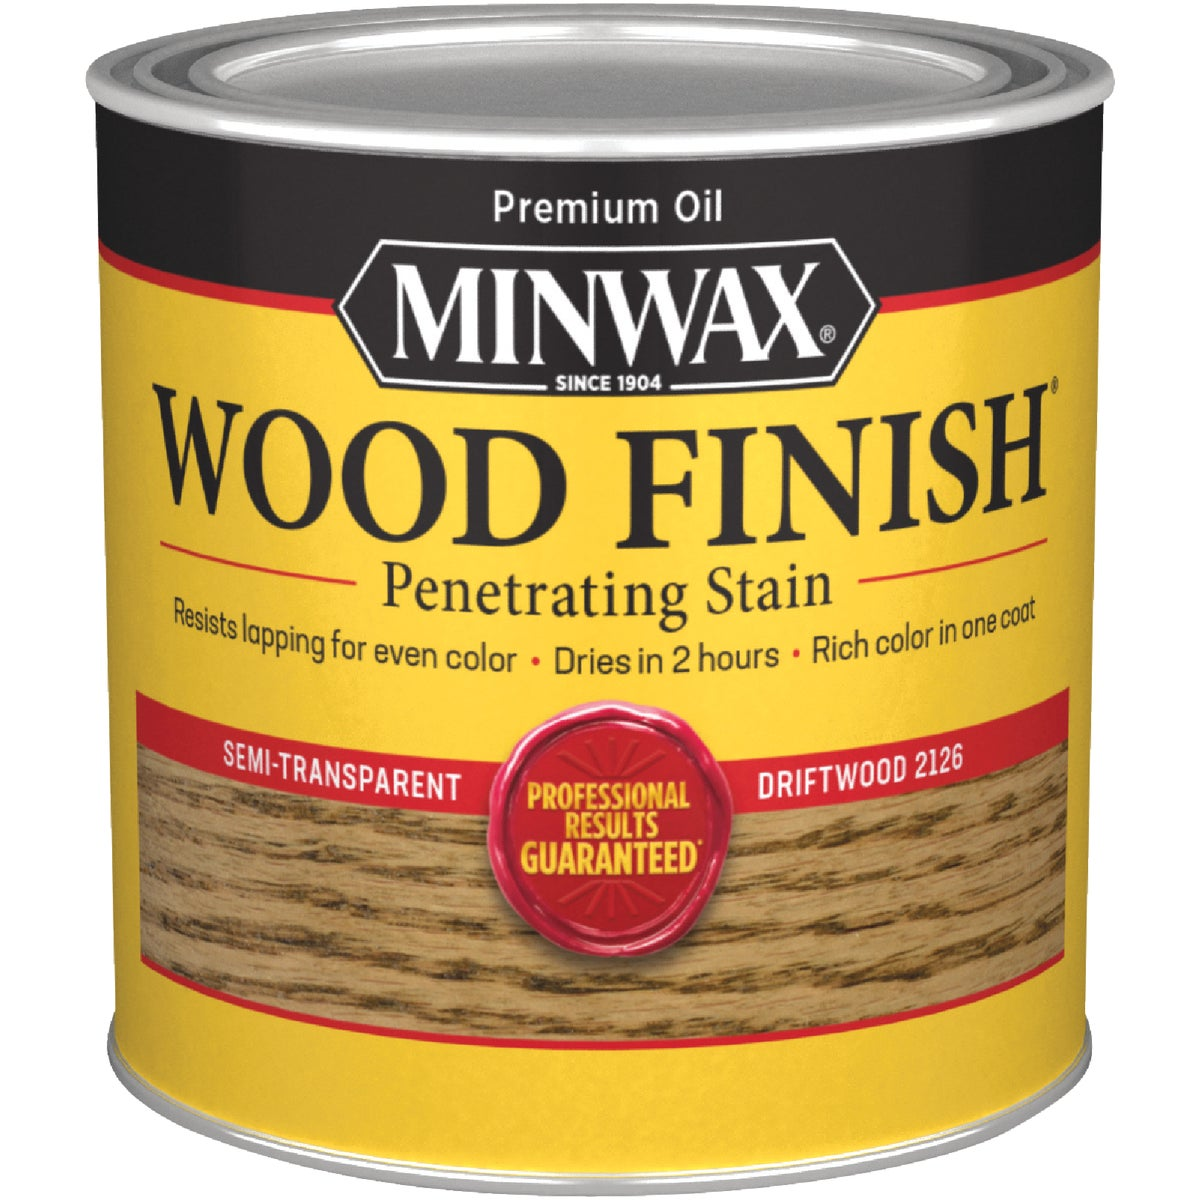 DRIFTWOOD WOOD STAIN - 221264444 by Minwax Company